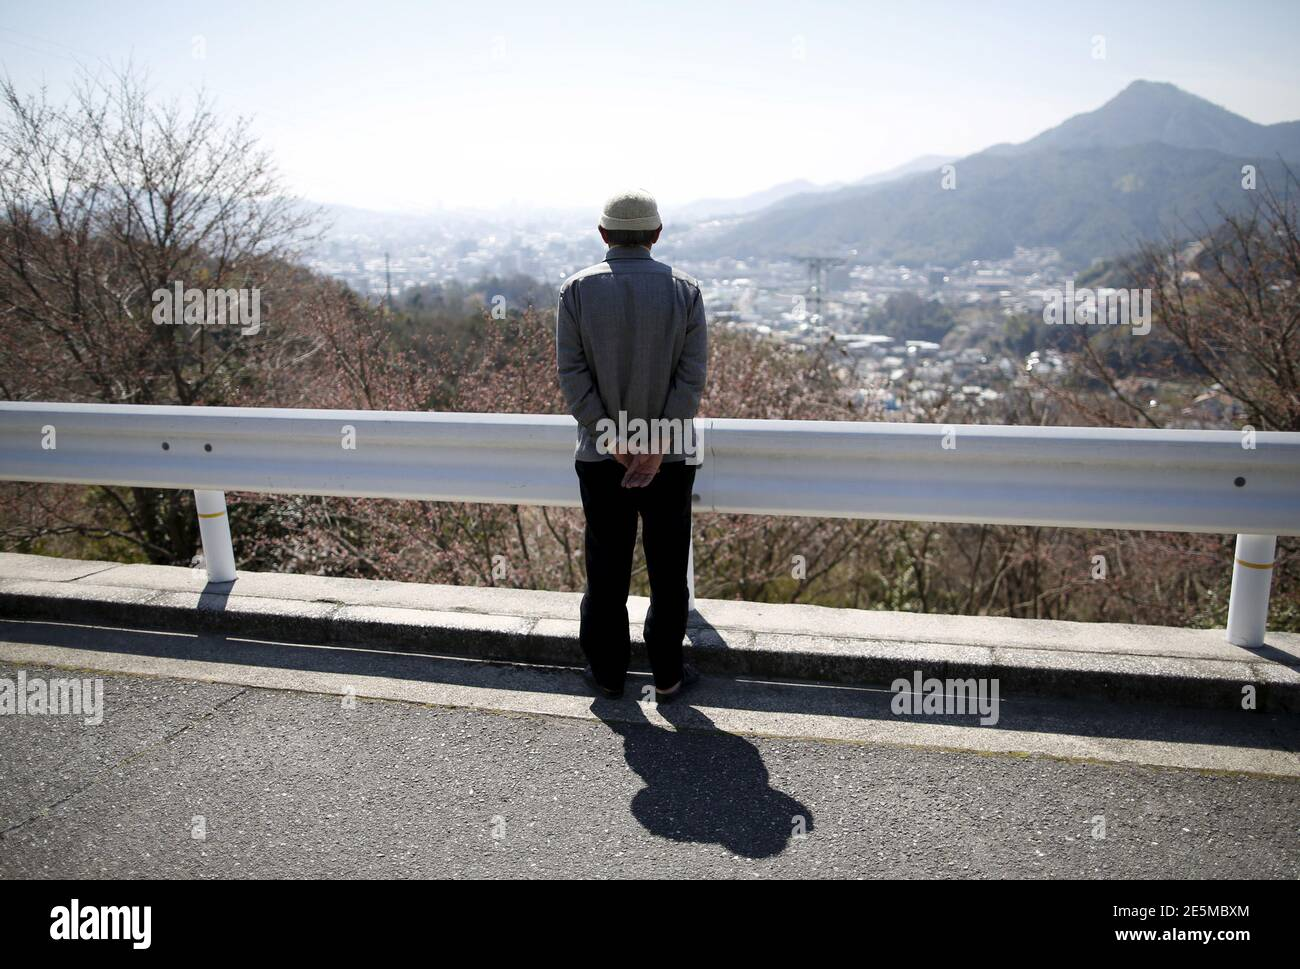 Fumiaki Kajiya, a 76-year-old atomic bomb survivor and retired school teacher, looks towards the city center from the street in front of his home in Hiroshima, western Japan, March 27, 2015. As the 70th anniversary of the world's first nuclear attack nears, many survivors still find it too painful to talk about. But with their ranks dwindling, others are determined to pass on their experiences to younger generations. A U.S. bomber dropped the atomic bomb on Hiroshima on August 6 1945, killing about 140,000 by the end of the year, out of the 350,000 who lived in the city. The city still has som Stock Photo